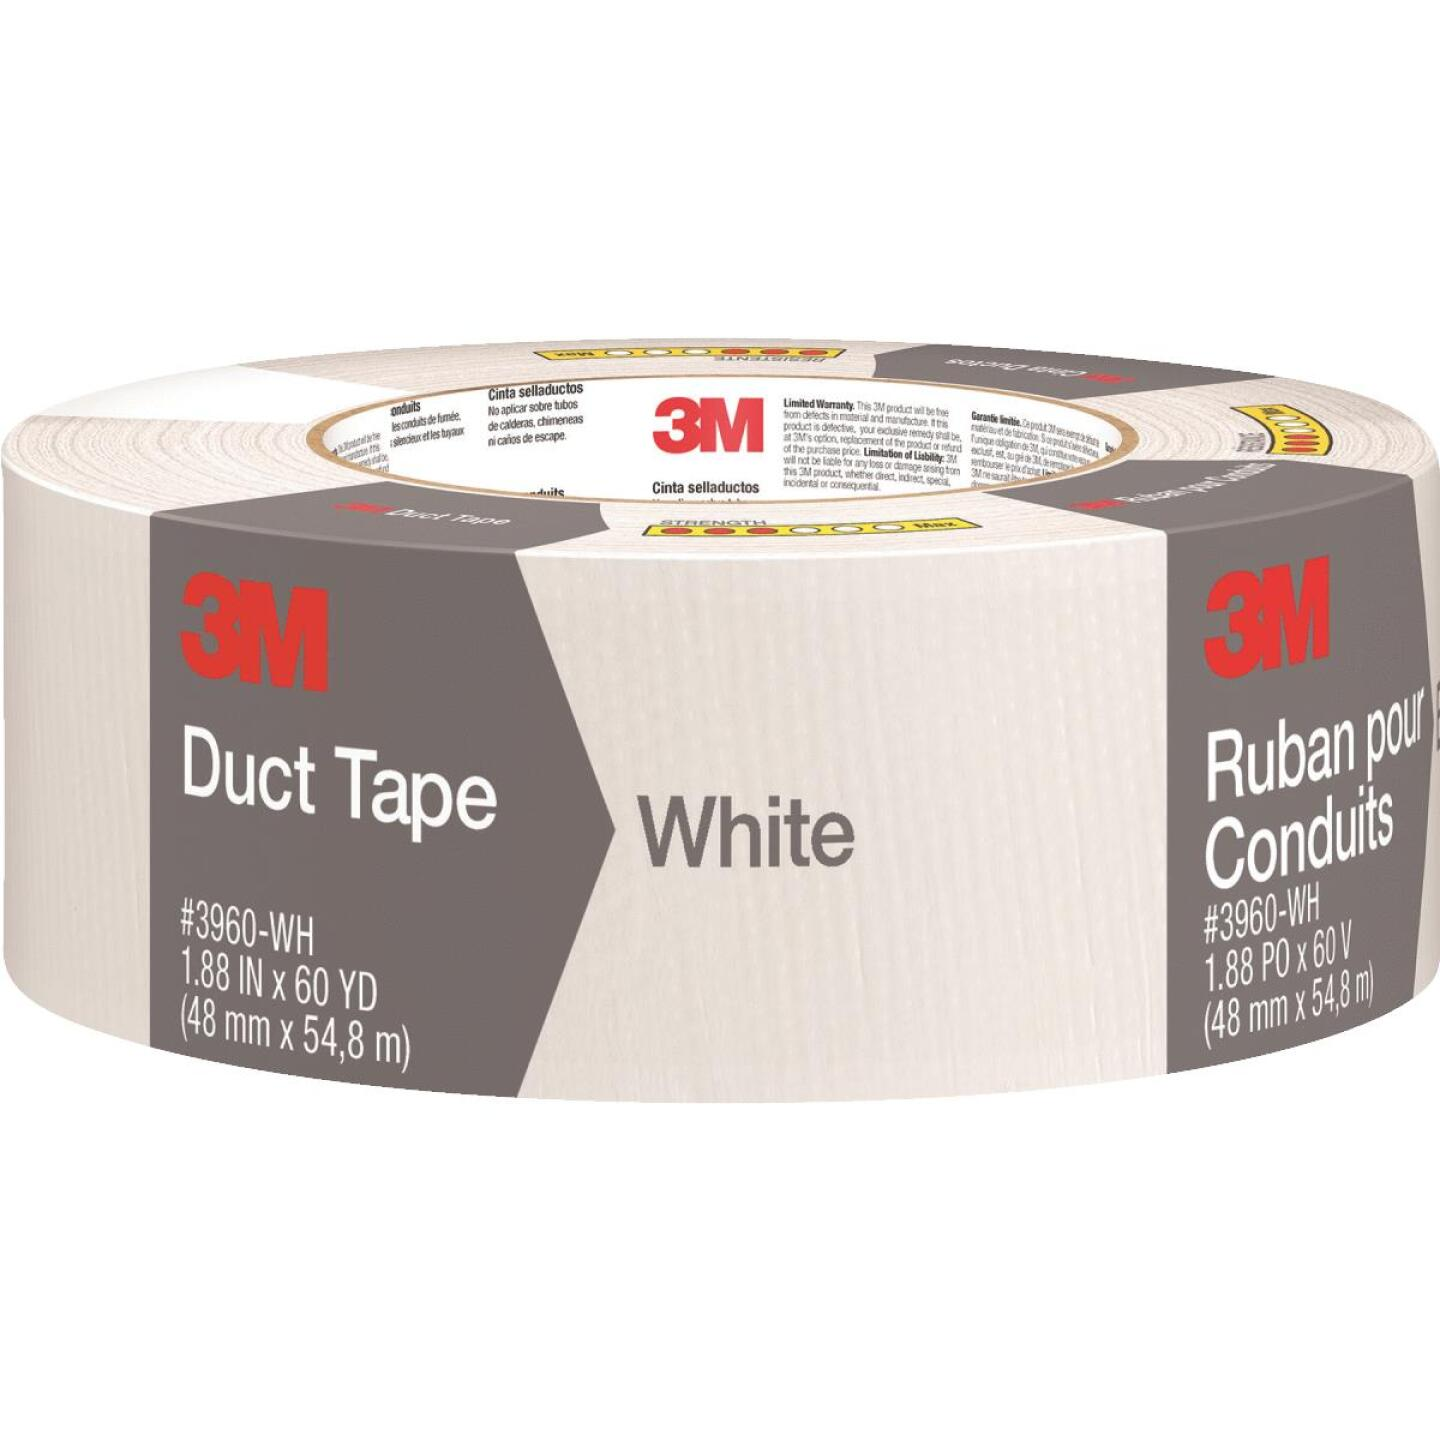 3M 1.88 In. x 60 Yd. Colored Duct Tape, White Image 1